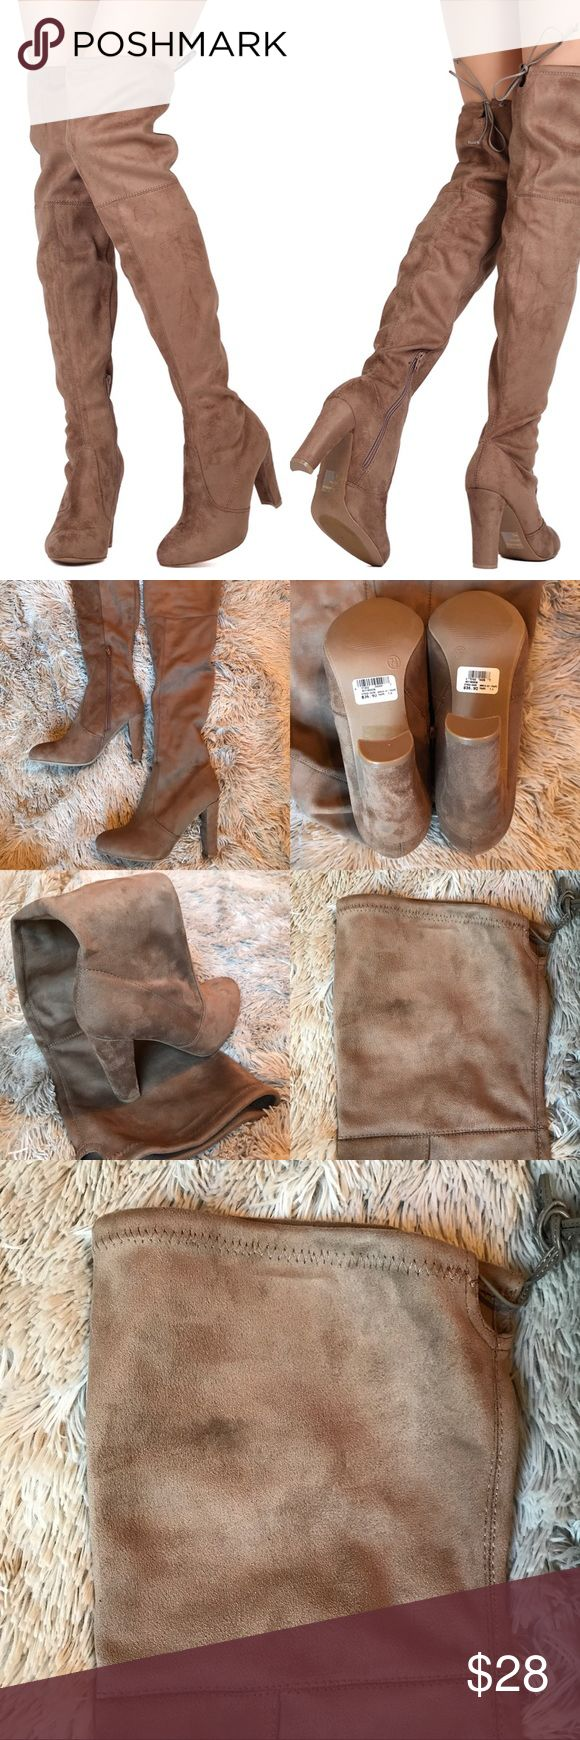 Windsor Taupe Over The Knee Boots size 7.5 Taupe suede Over The Knee boots with zip on inner side.  Size 7.5. Comes with original box and packaging.  Brand new, unworn & in perfect condition. What you see is what you see :) Windsor Shoes Over the Knee Boots